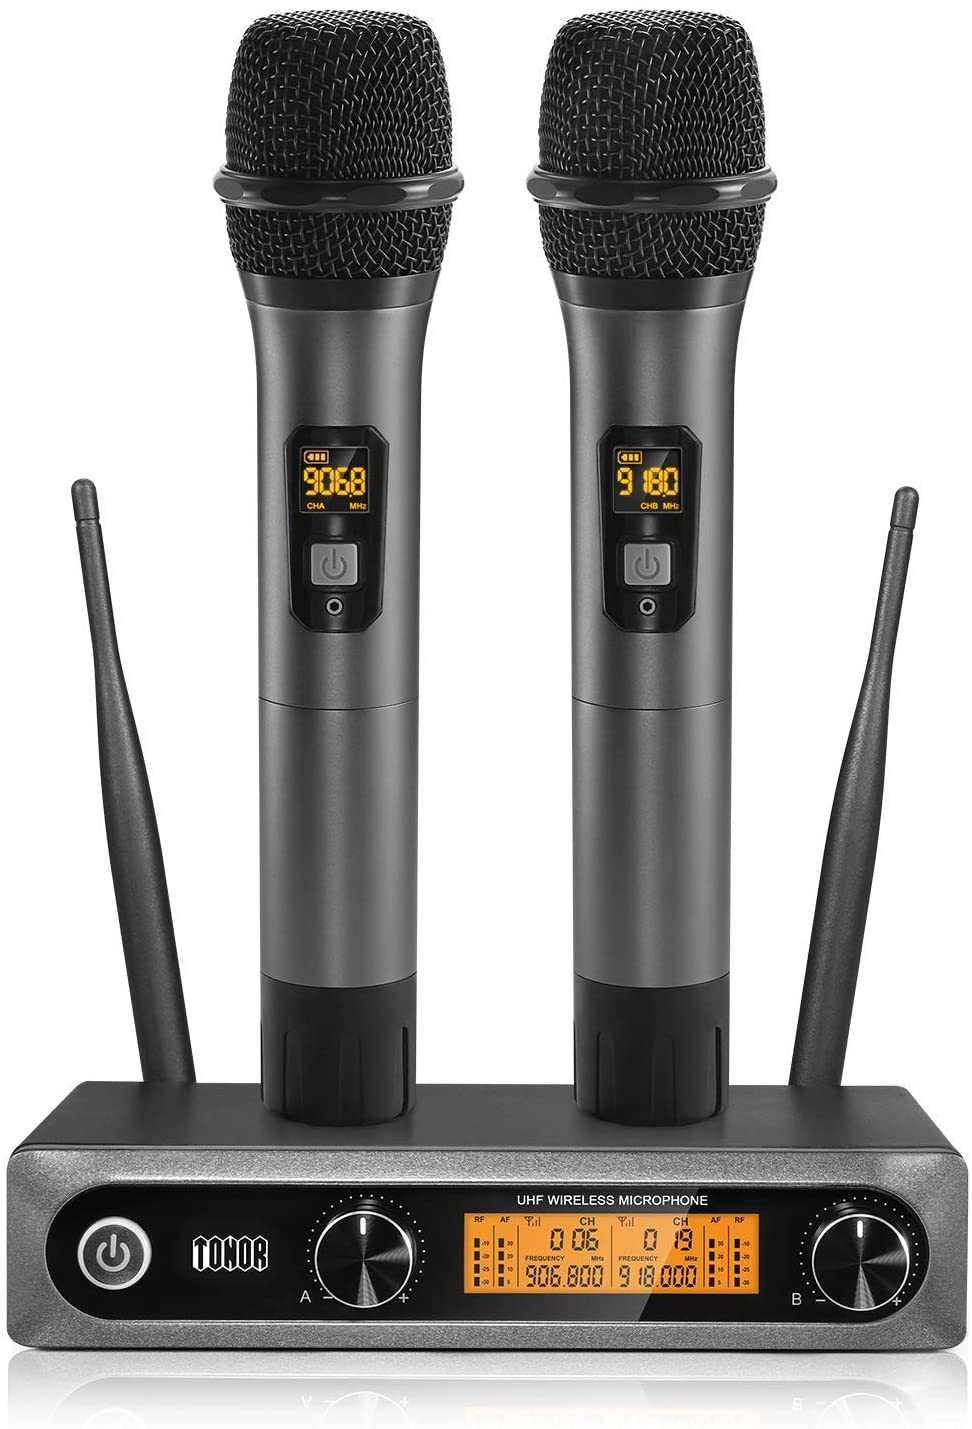 TONOR TW-820 Professional Wireless Microphone